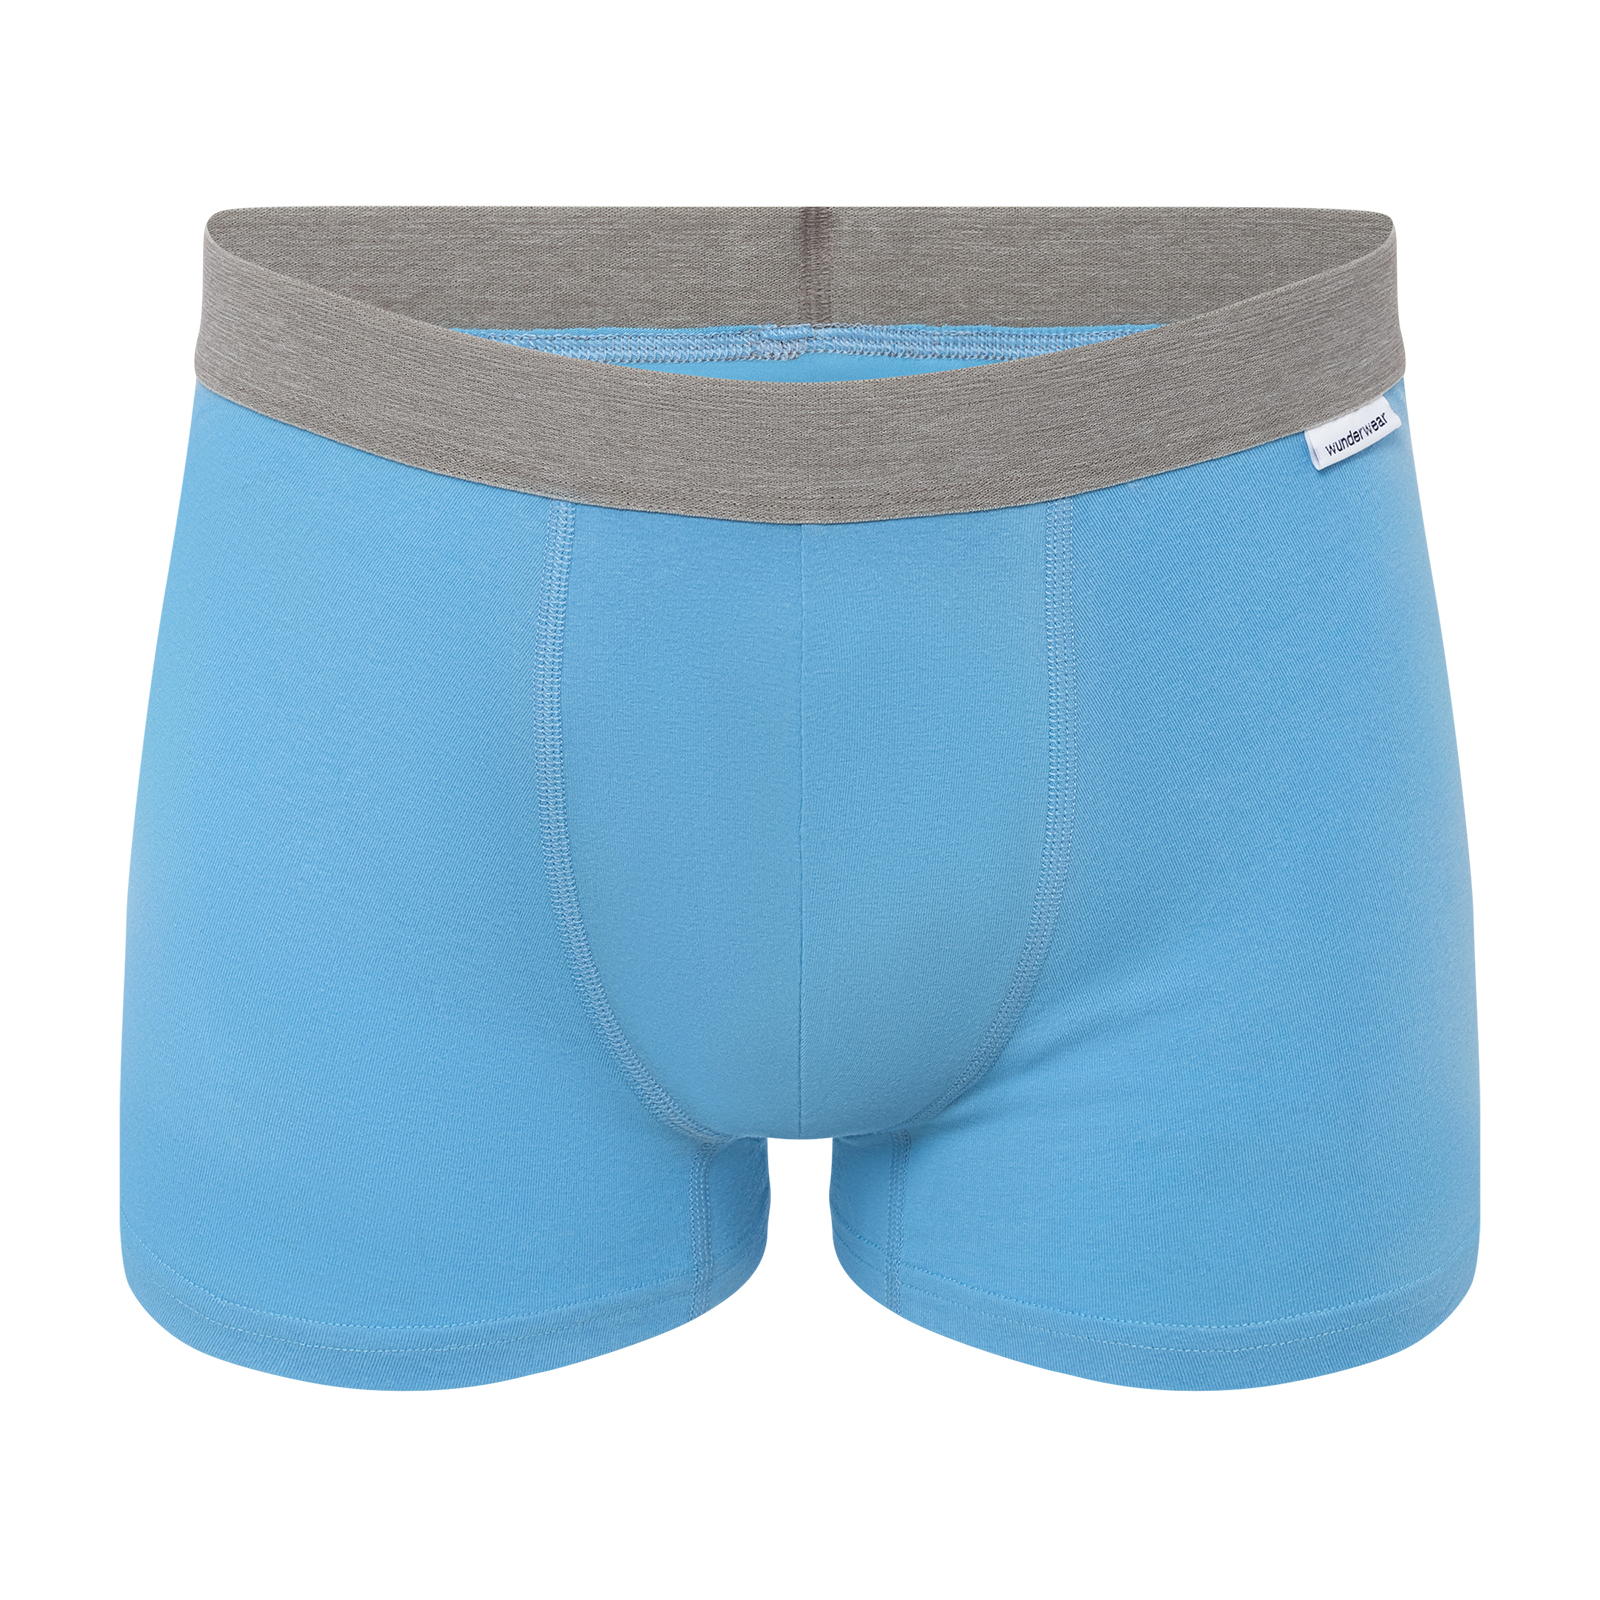 Underwear product photo